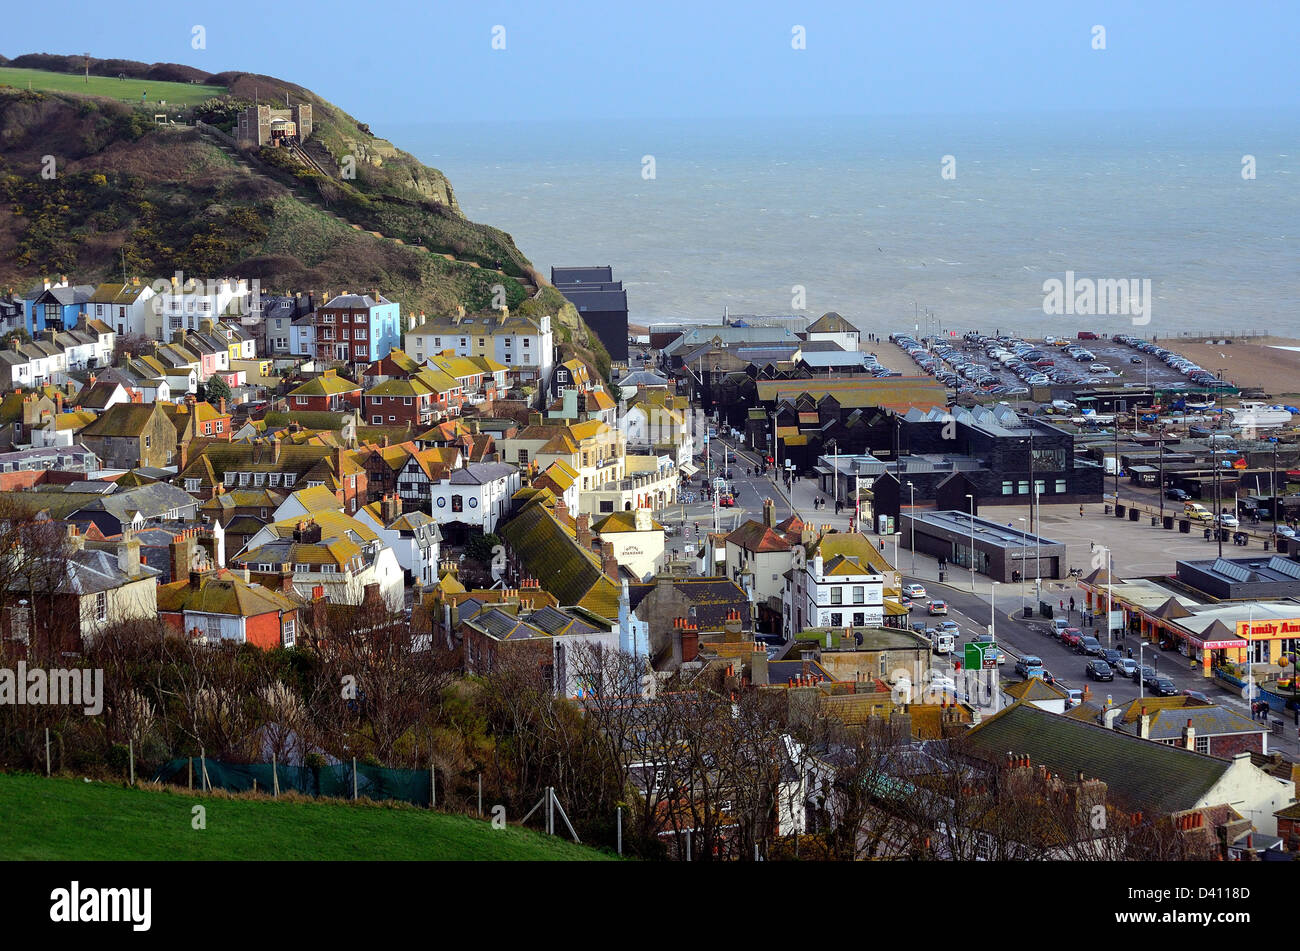 Rooftops in Hastings Old Town Sussex - Stock Image